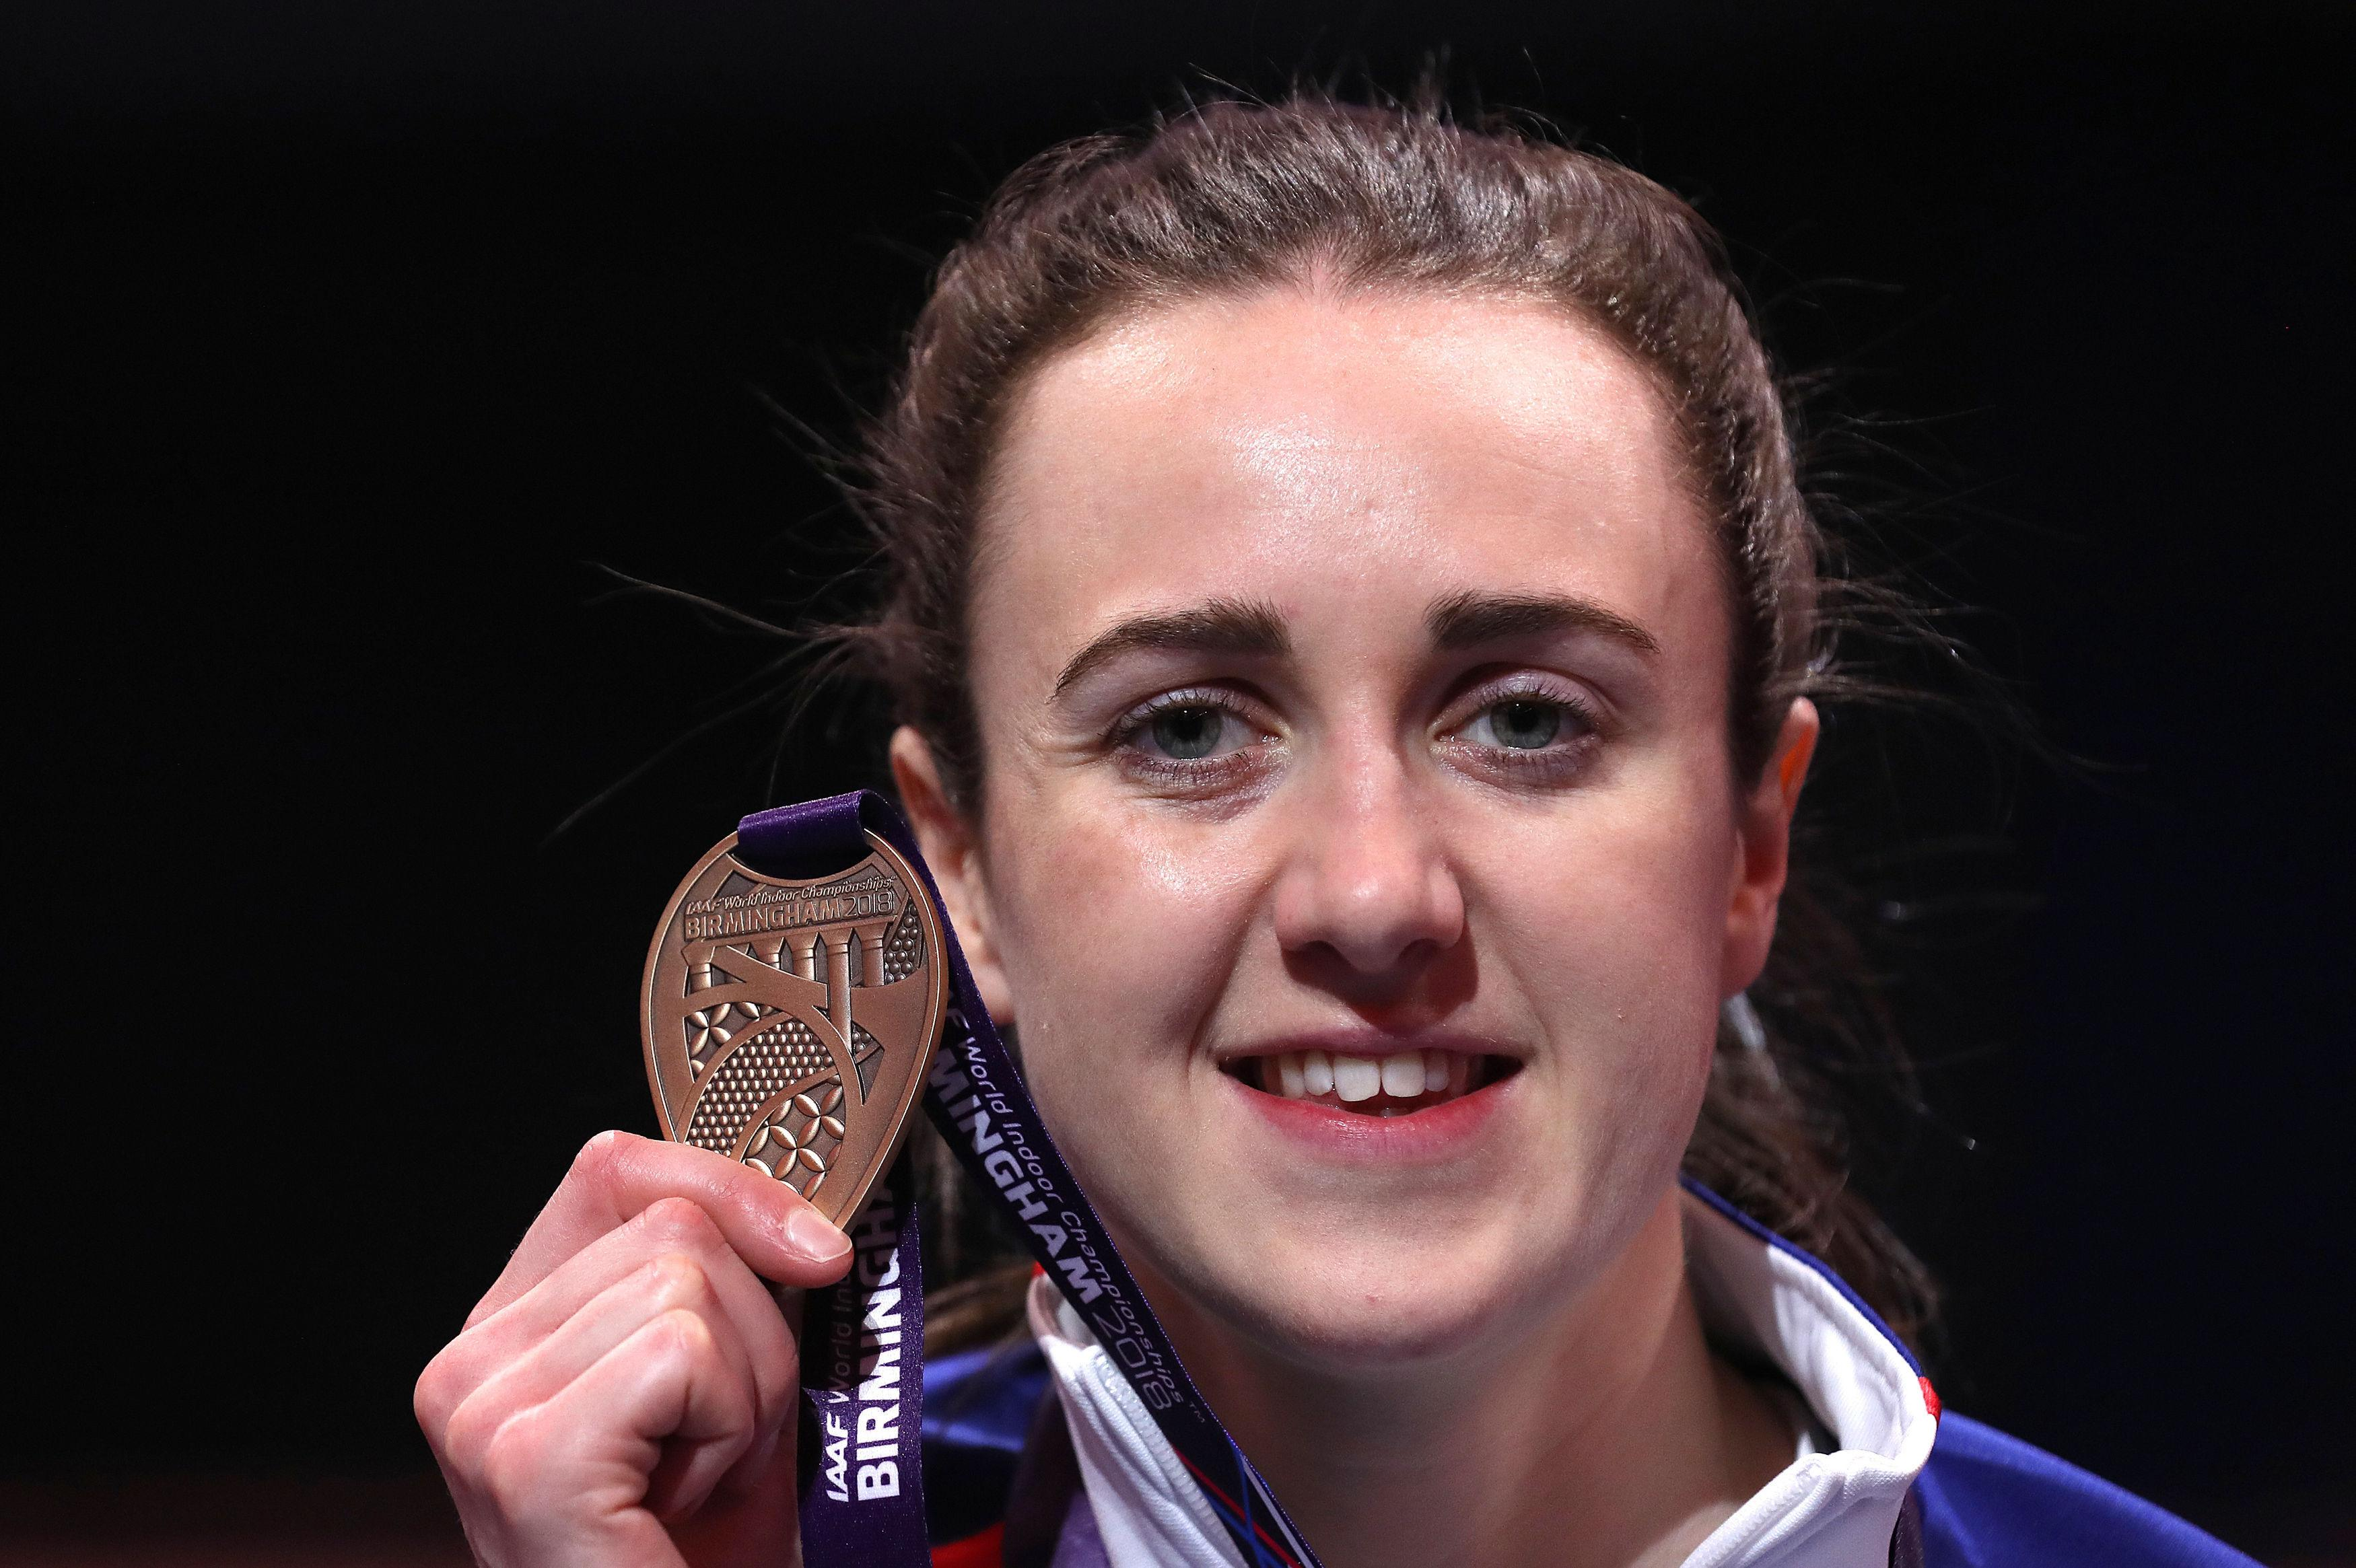 Muir took the bronze in Birmingham at the World Indoor Championships